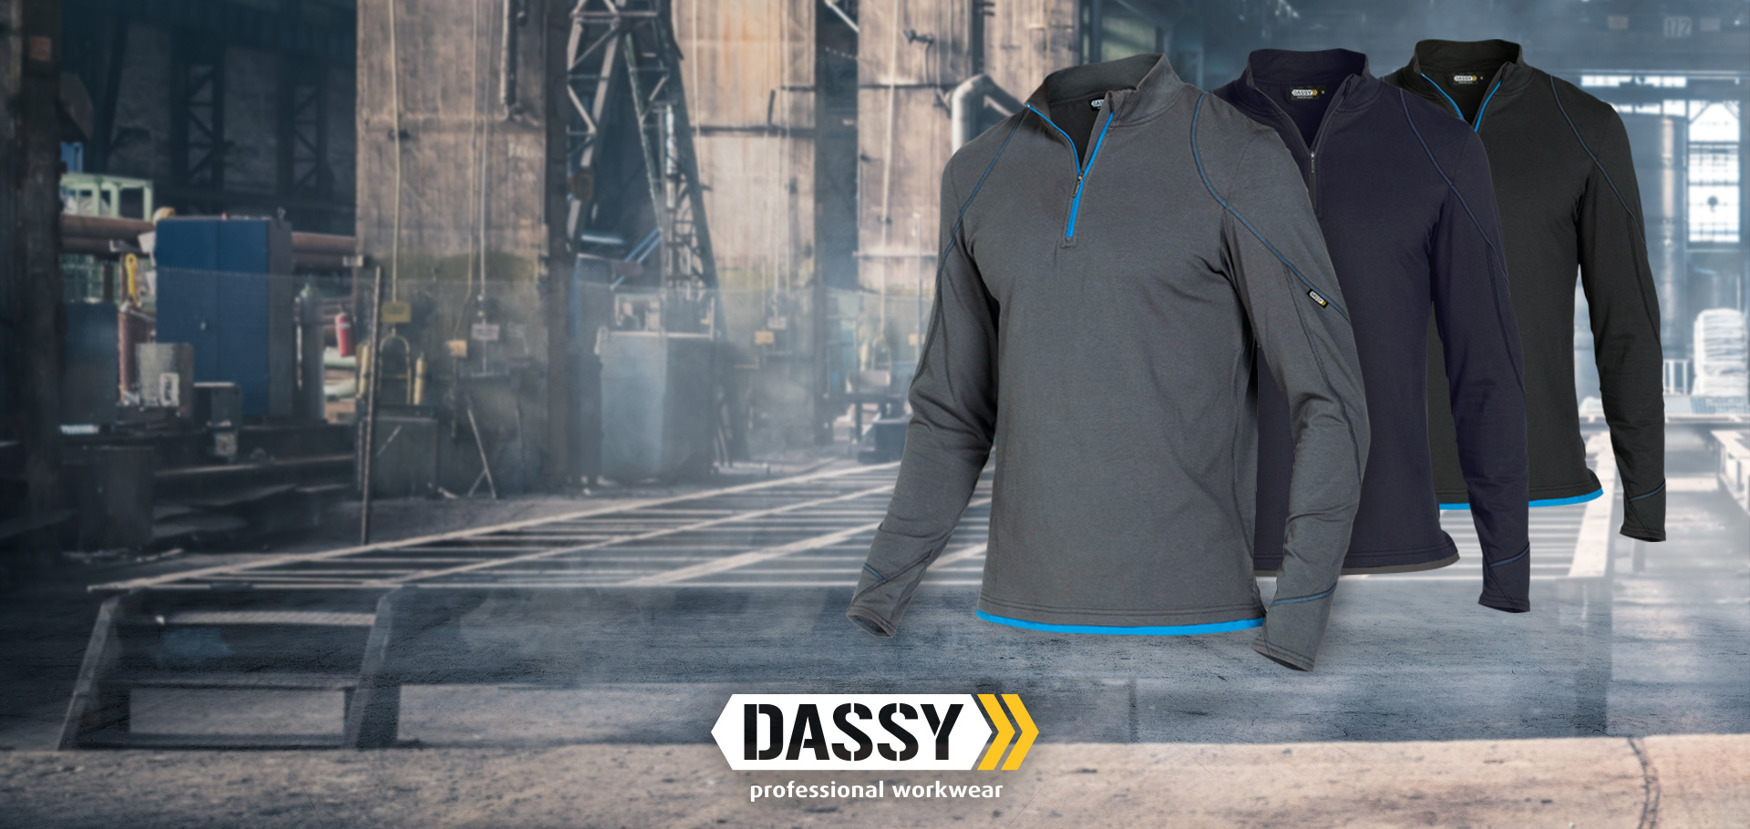 Shop D-FX PROMOTION - Buy 2 D-FX work trousers and get <BR/>1 DASSY Sonic for free#Learn all about this promotion